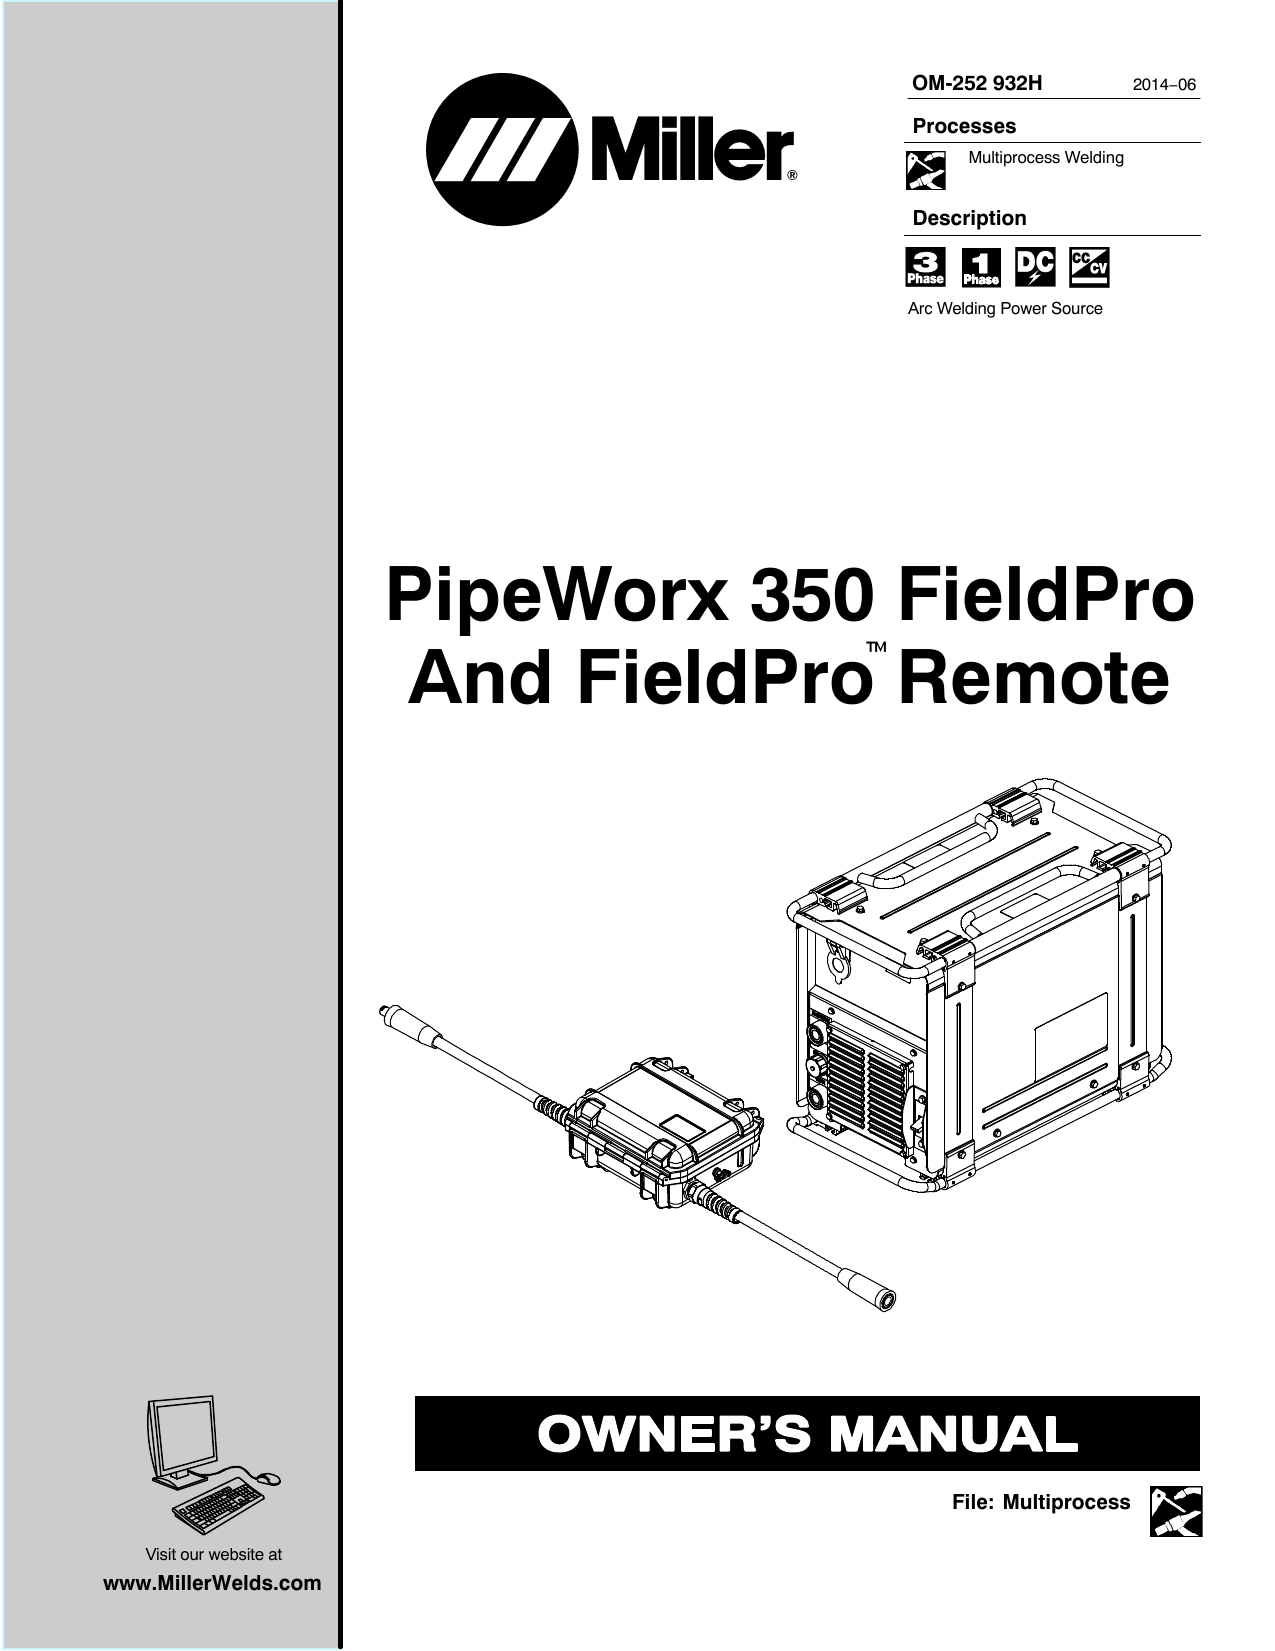 Miller PIPEWORX 350 FIELDPRO AND FIELDPRO REMOTE User